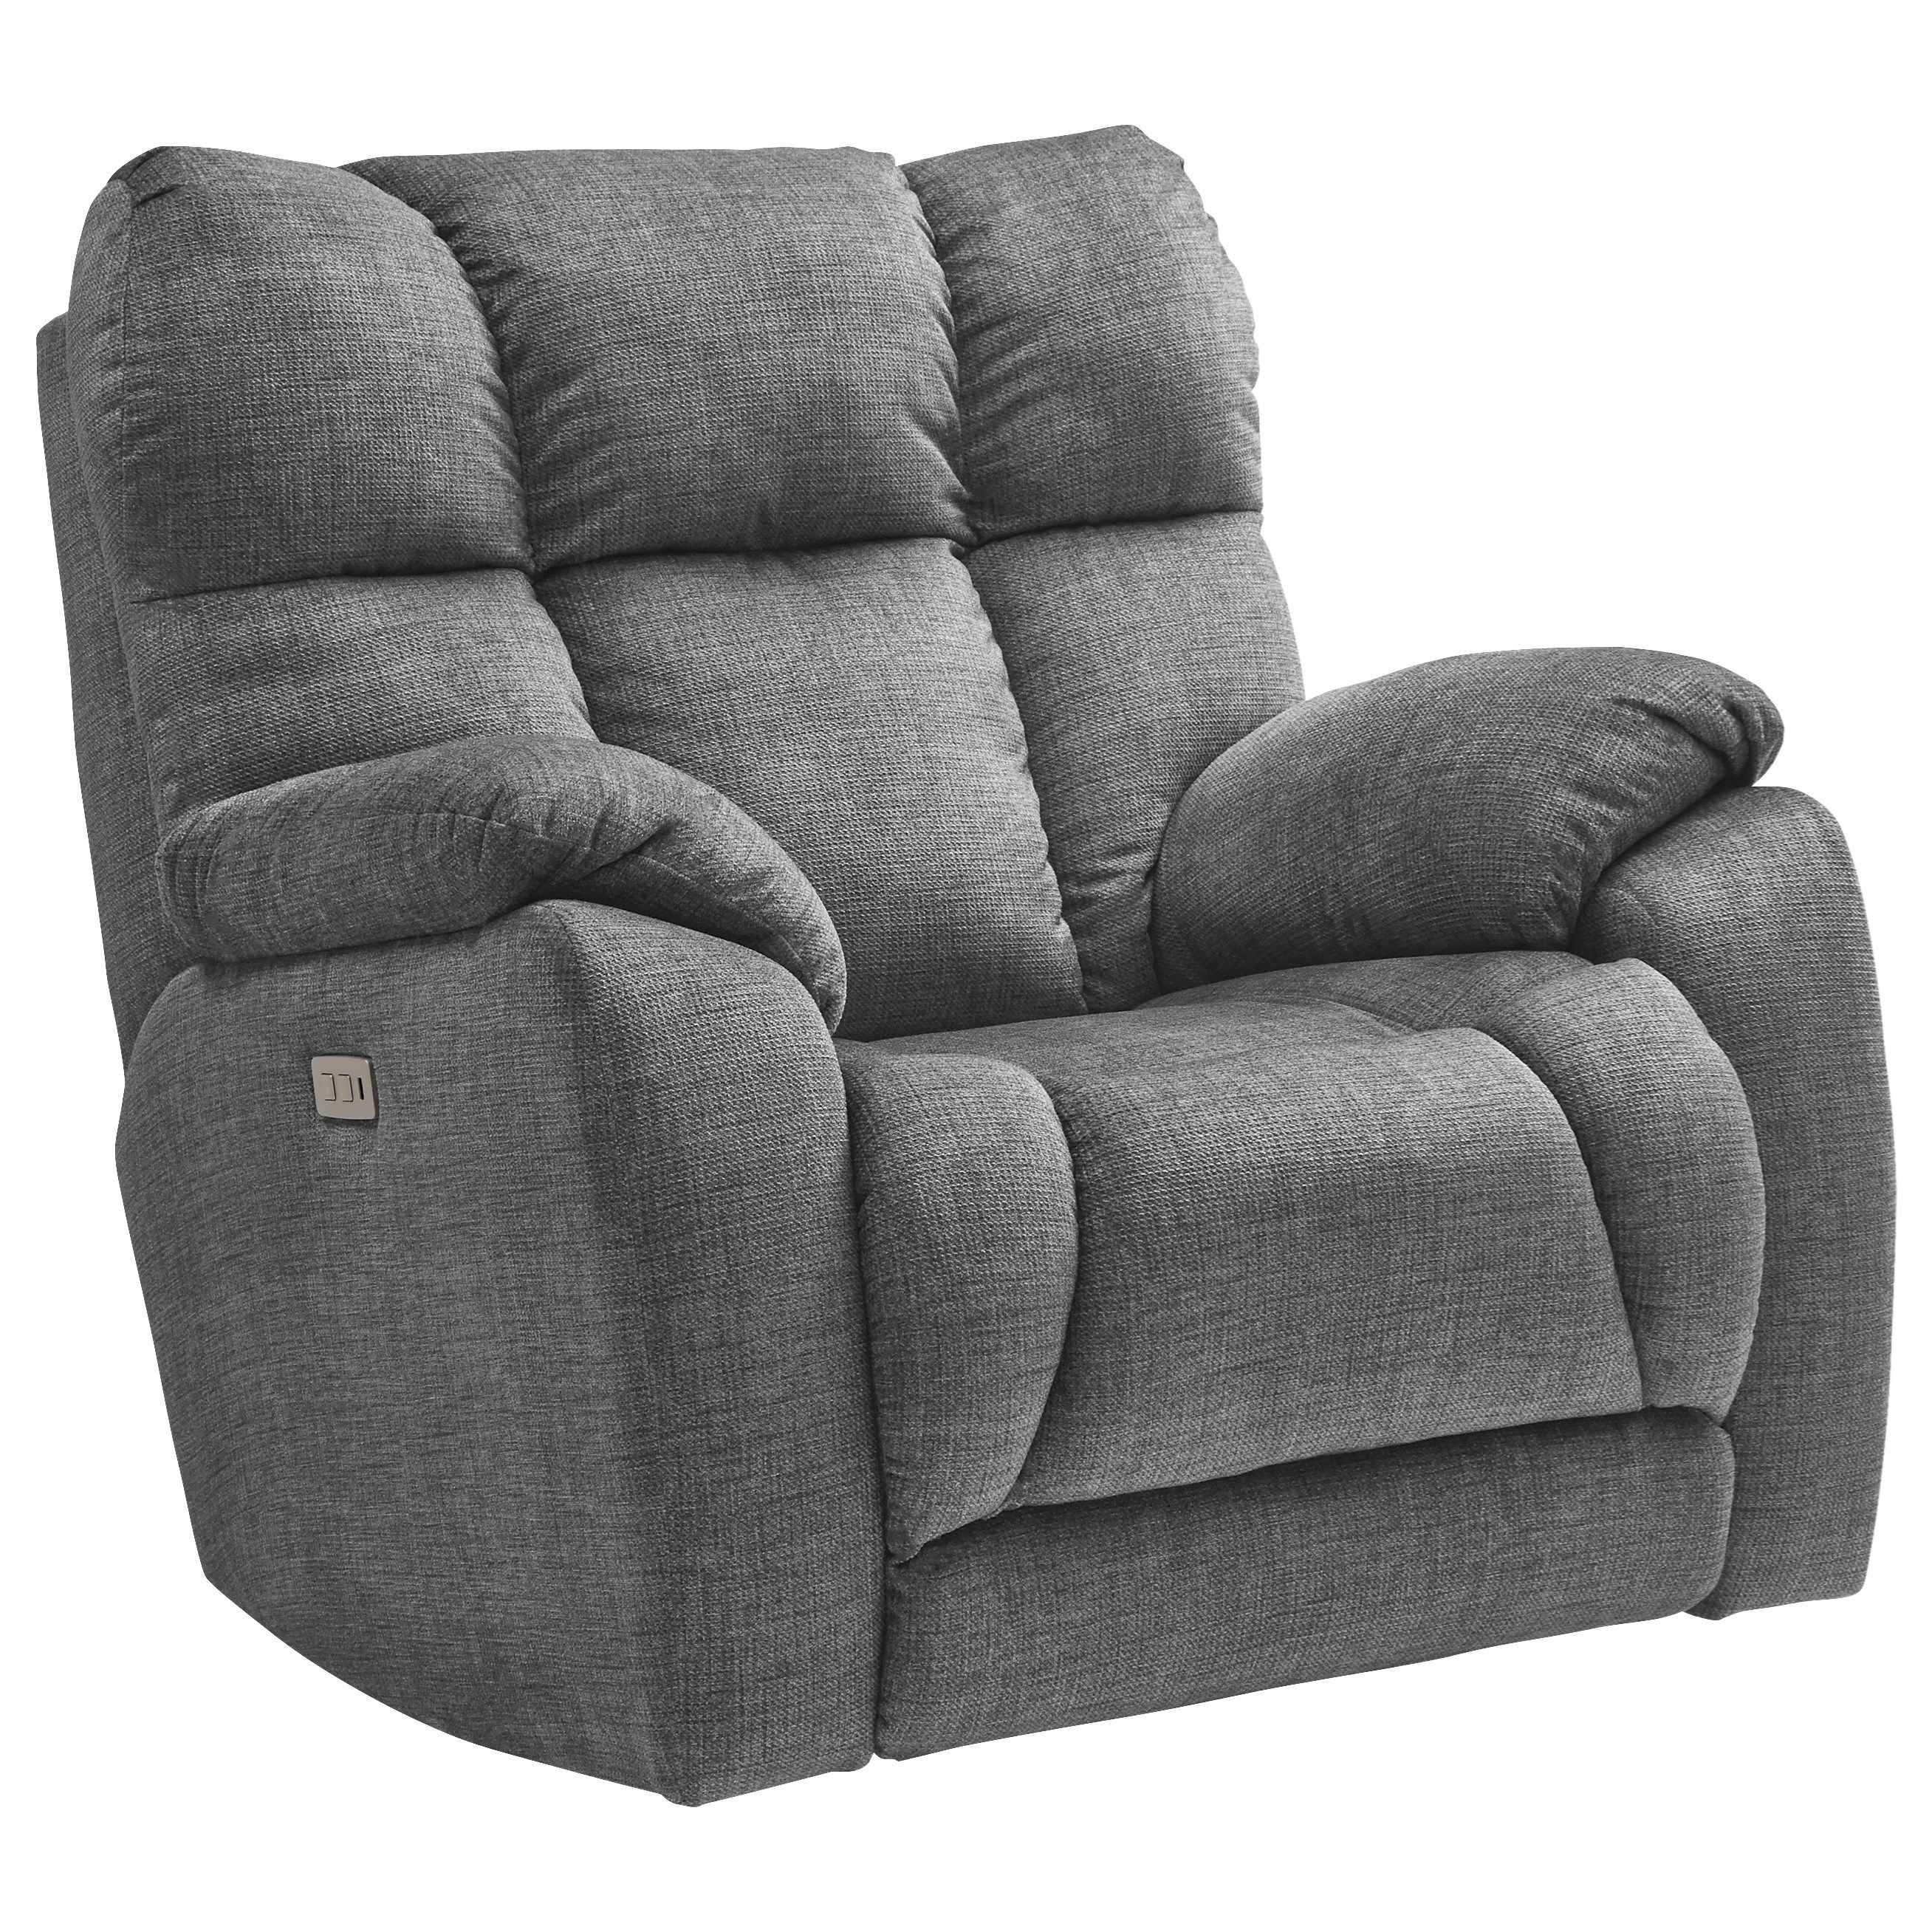 Wild Card Rocker Recliner by Southern Motion at Powell's Furniture and Mattress